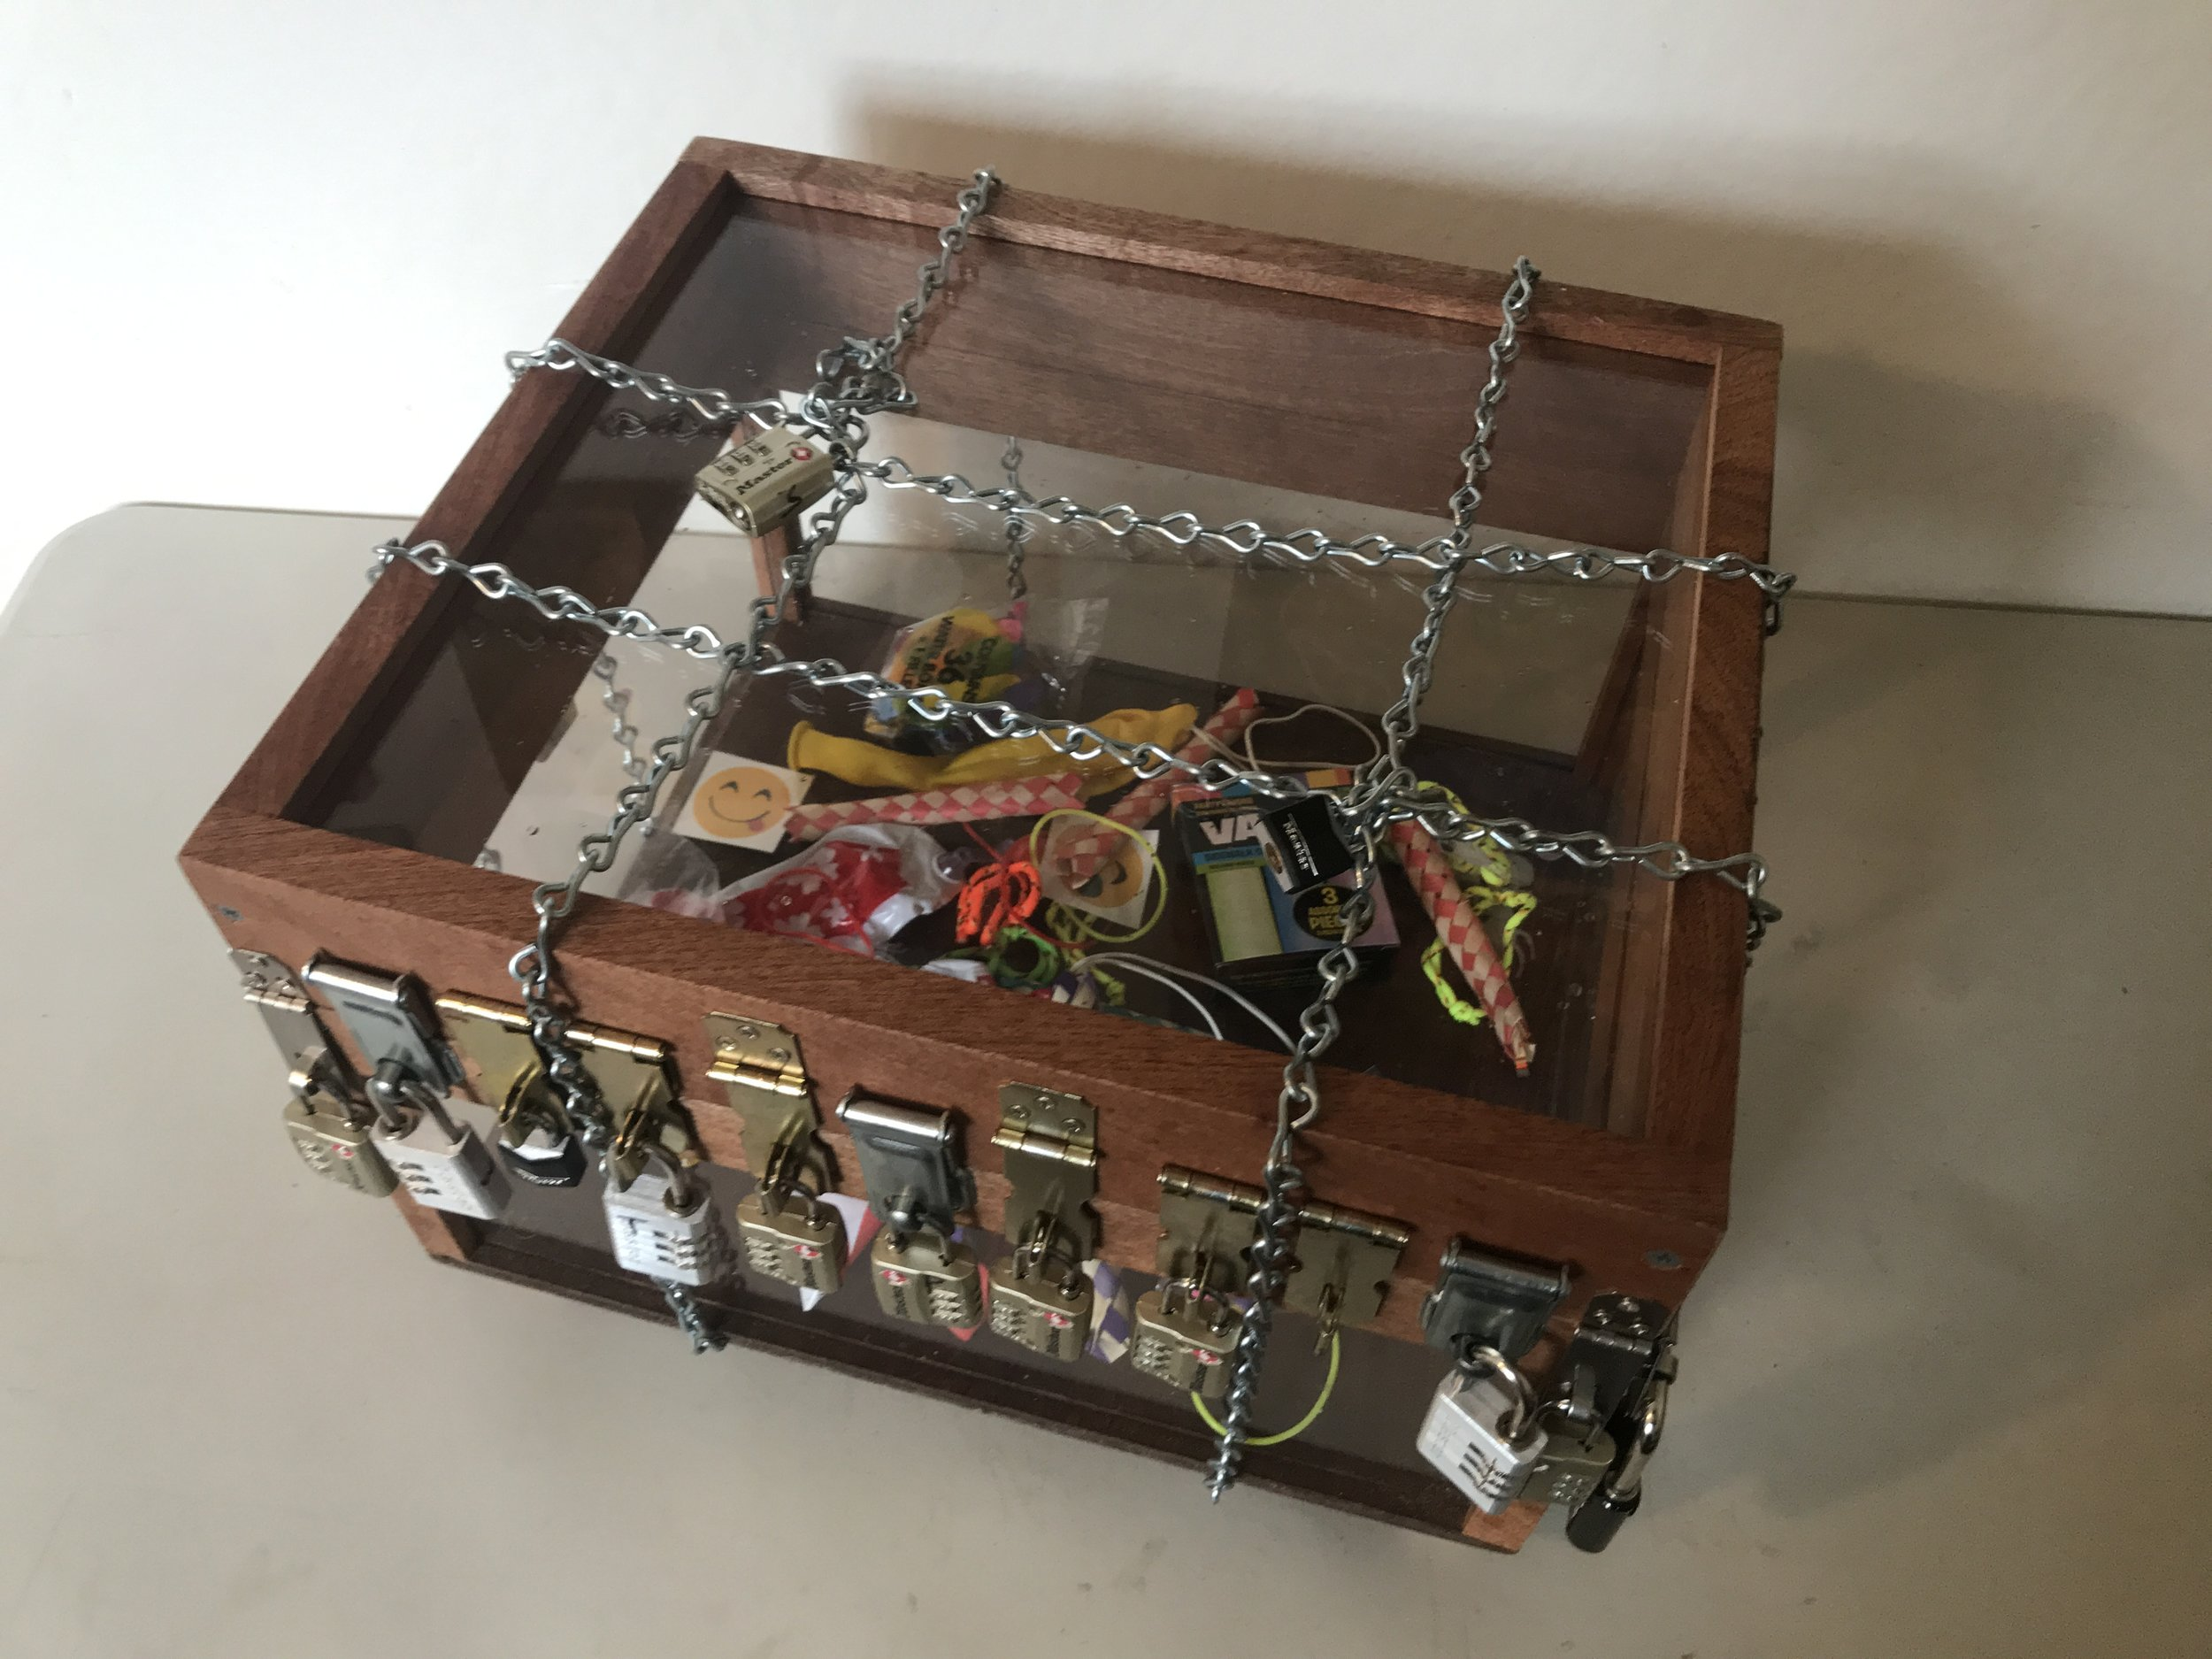 Clear Puzzle Box - Hands down one of the most popular games. This clear box holds a tantalizing prize just out of reach. It works well to hind clues all around the event and let people hunt them down one by one to claim their prize.